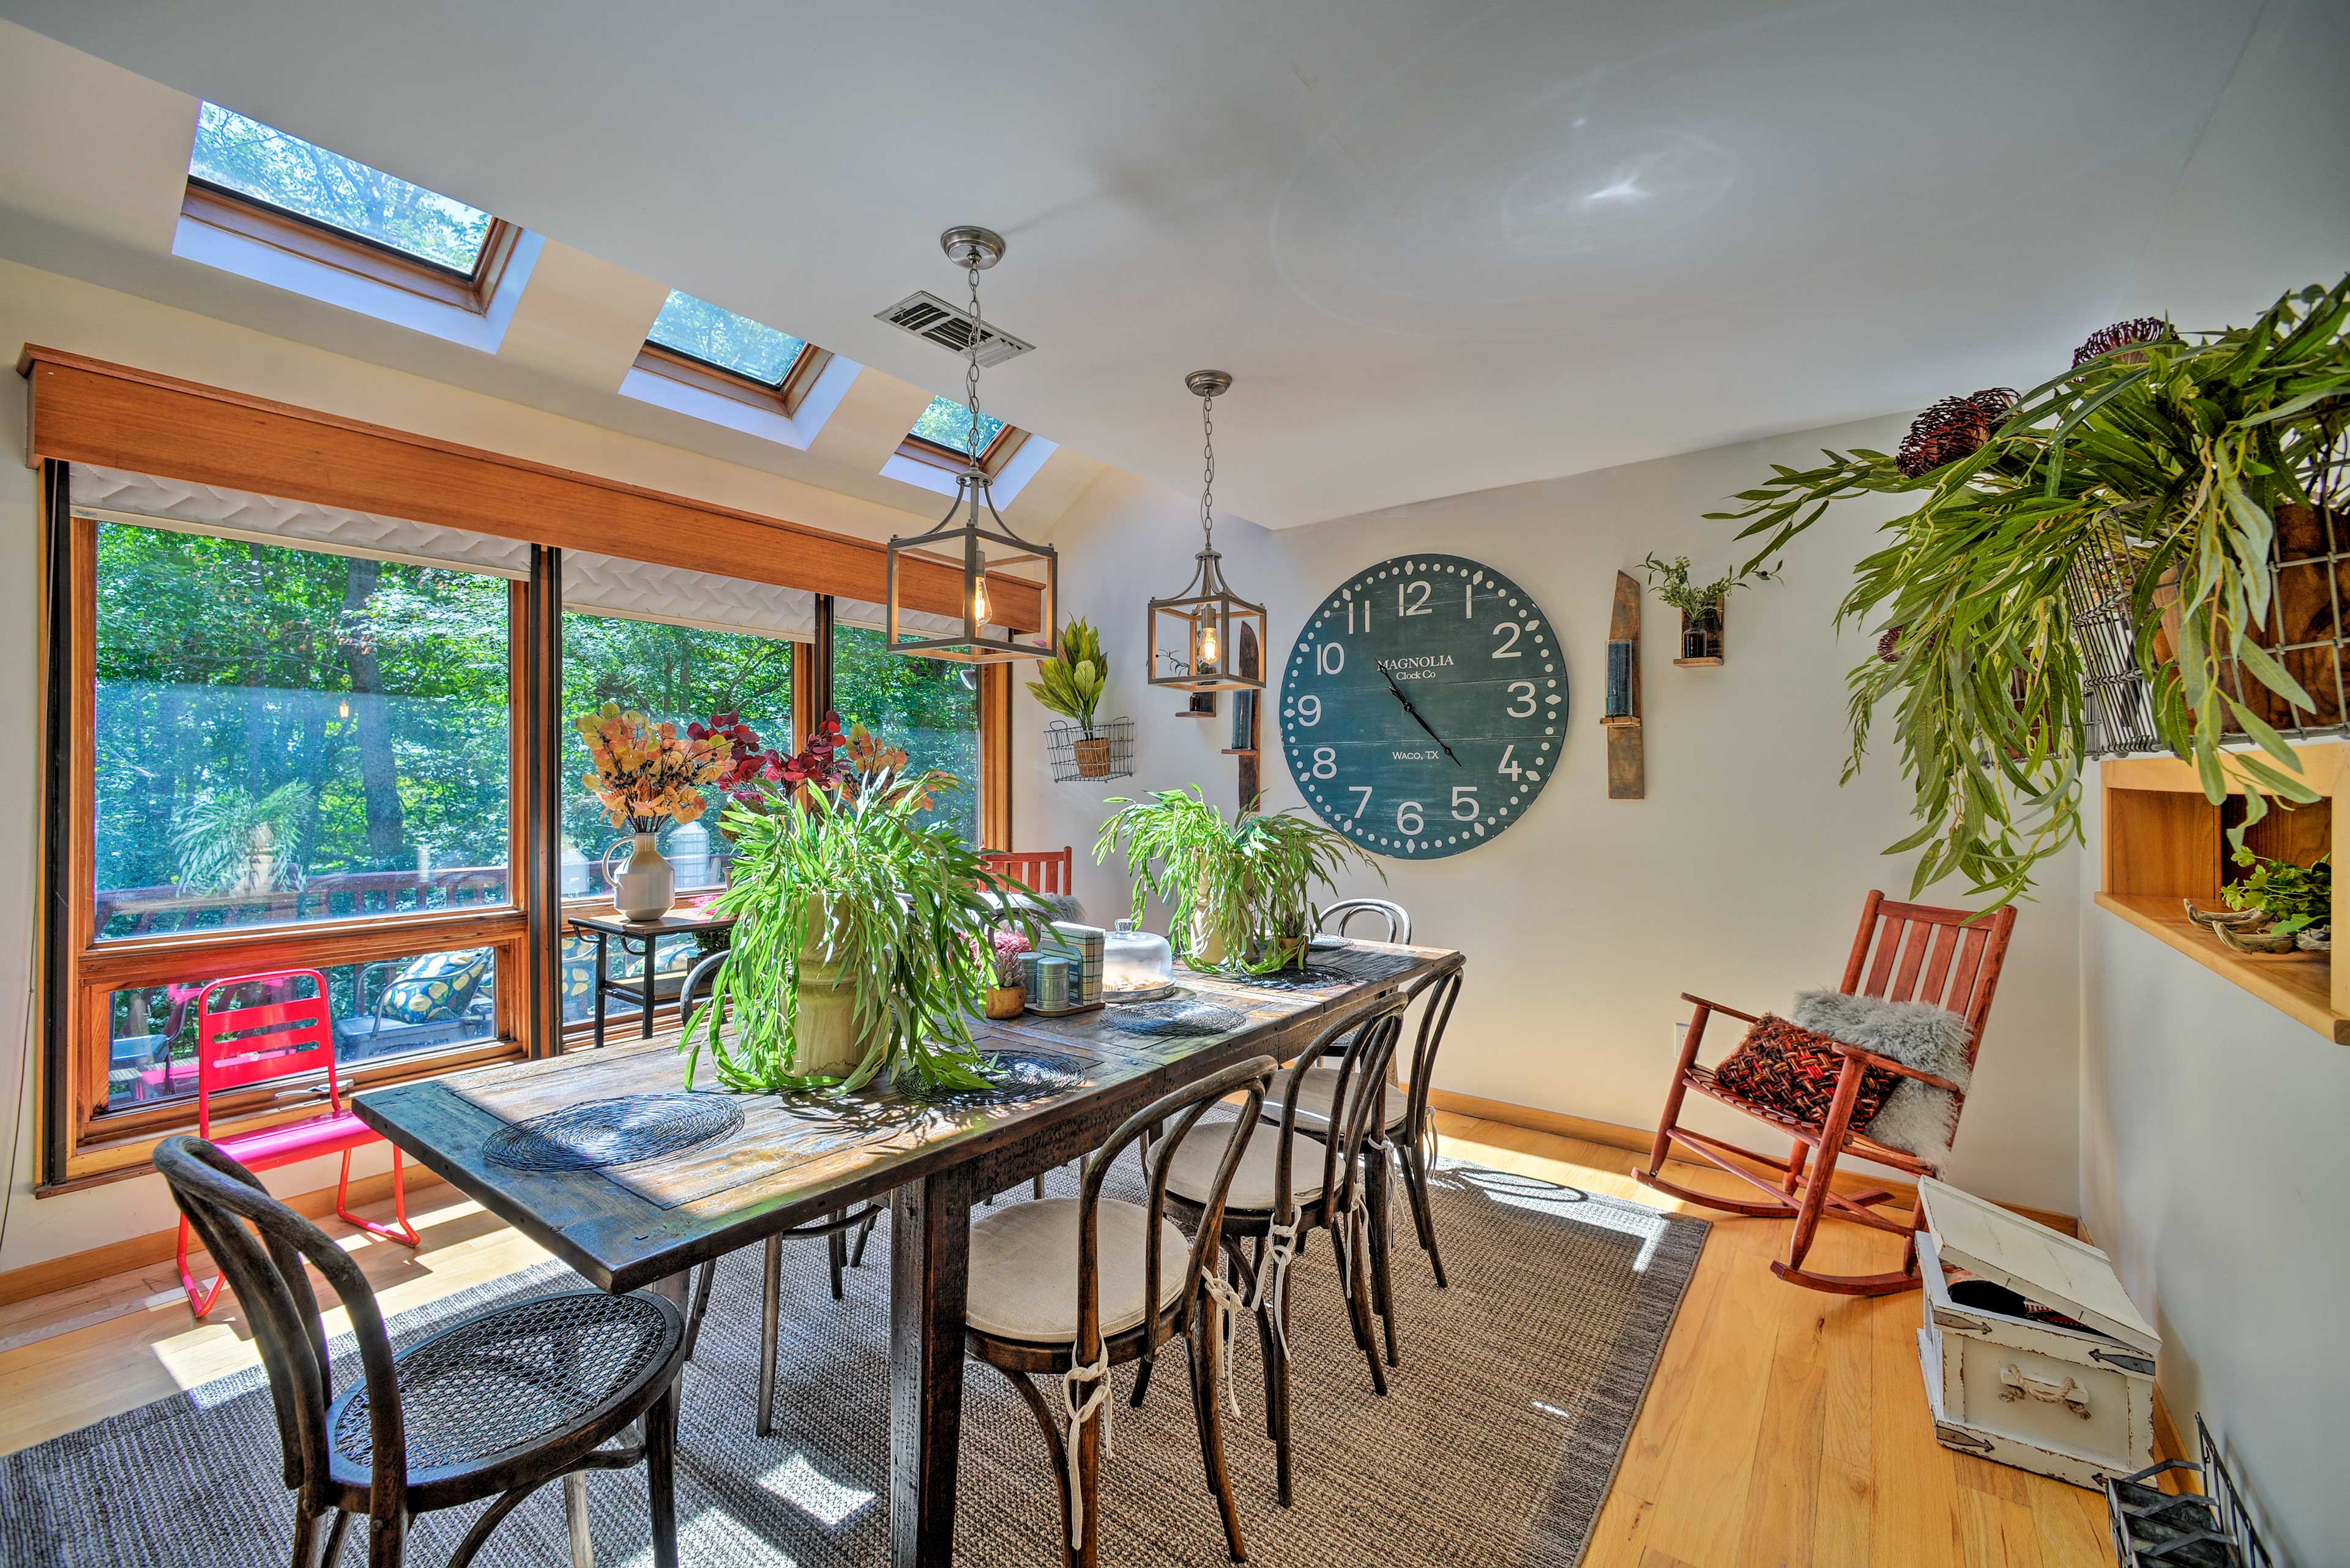 Dining Table | Natural Light | Free WiFi